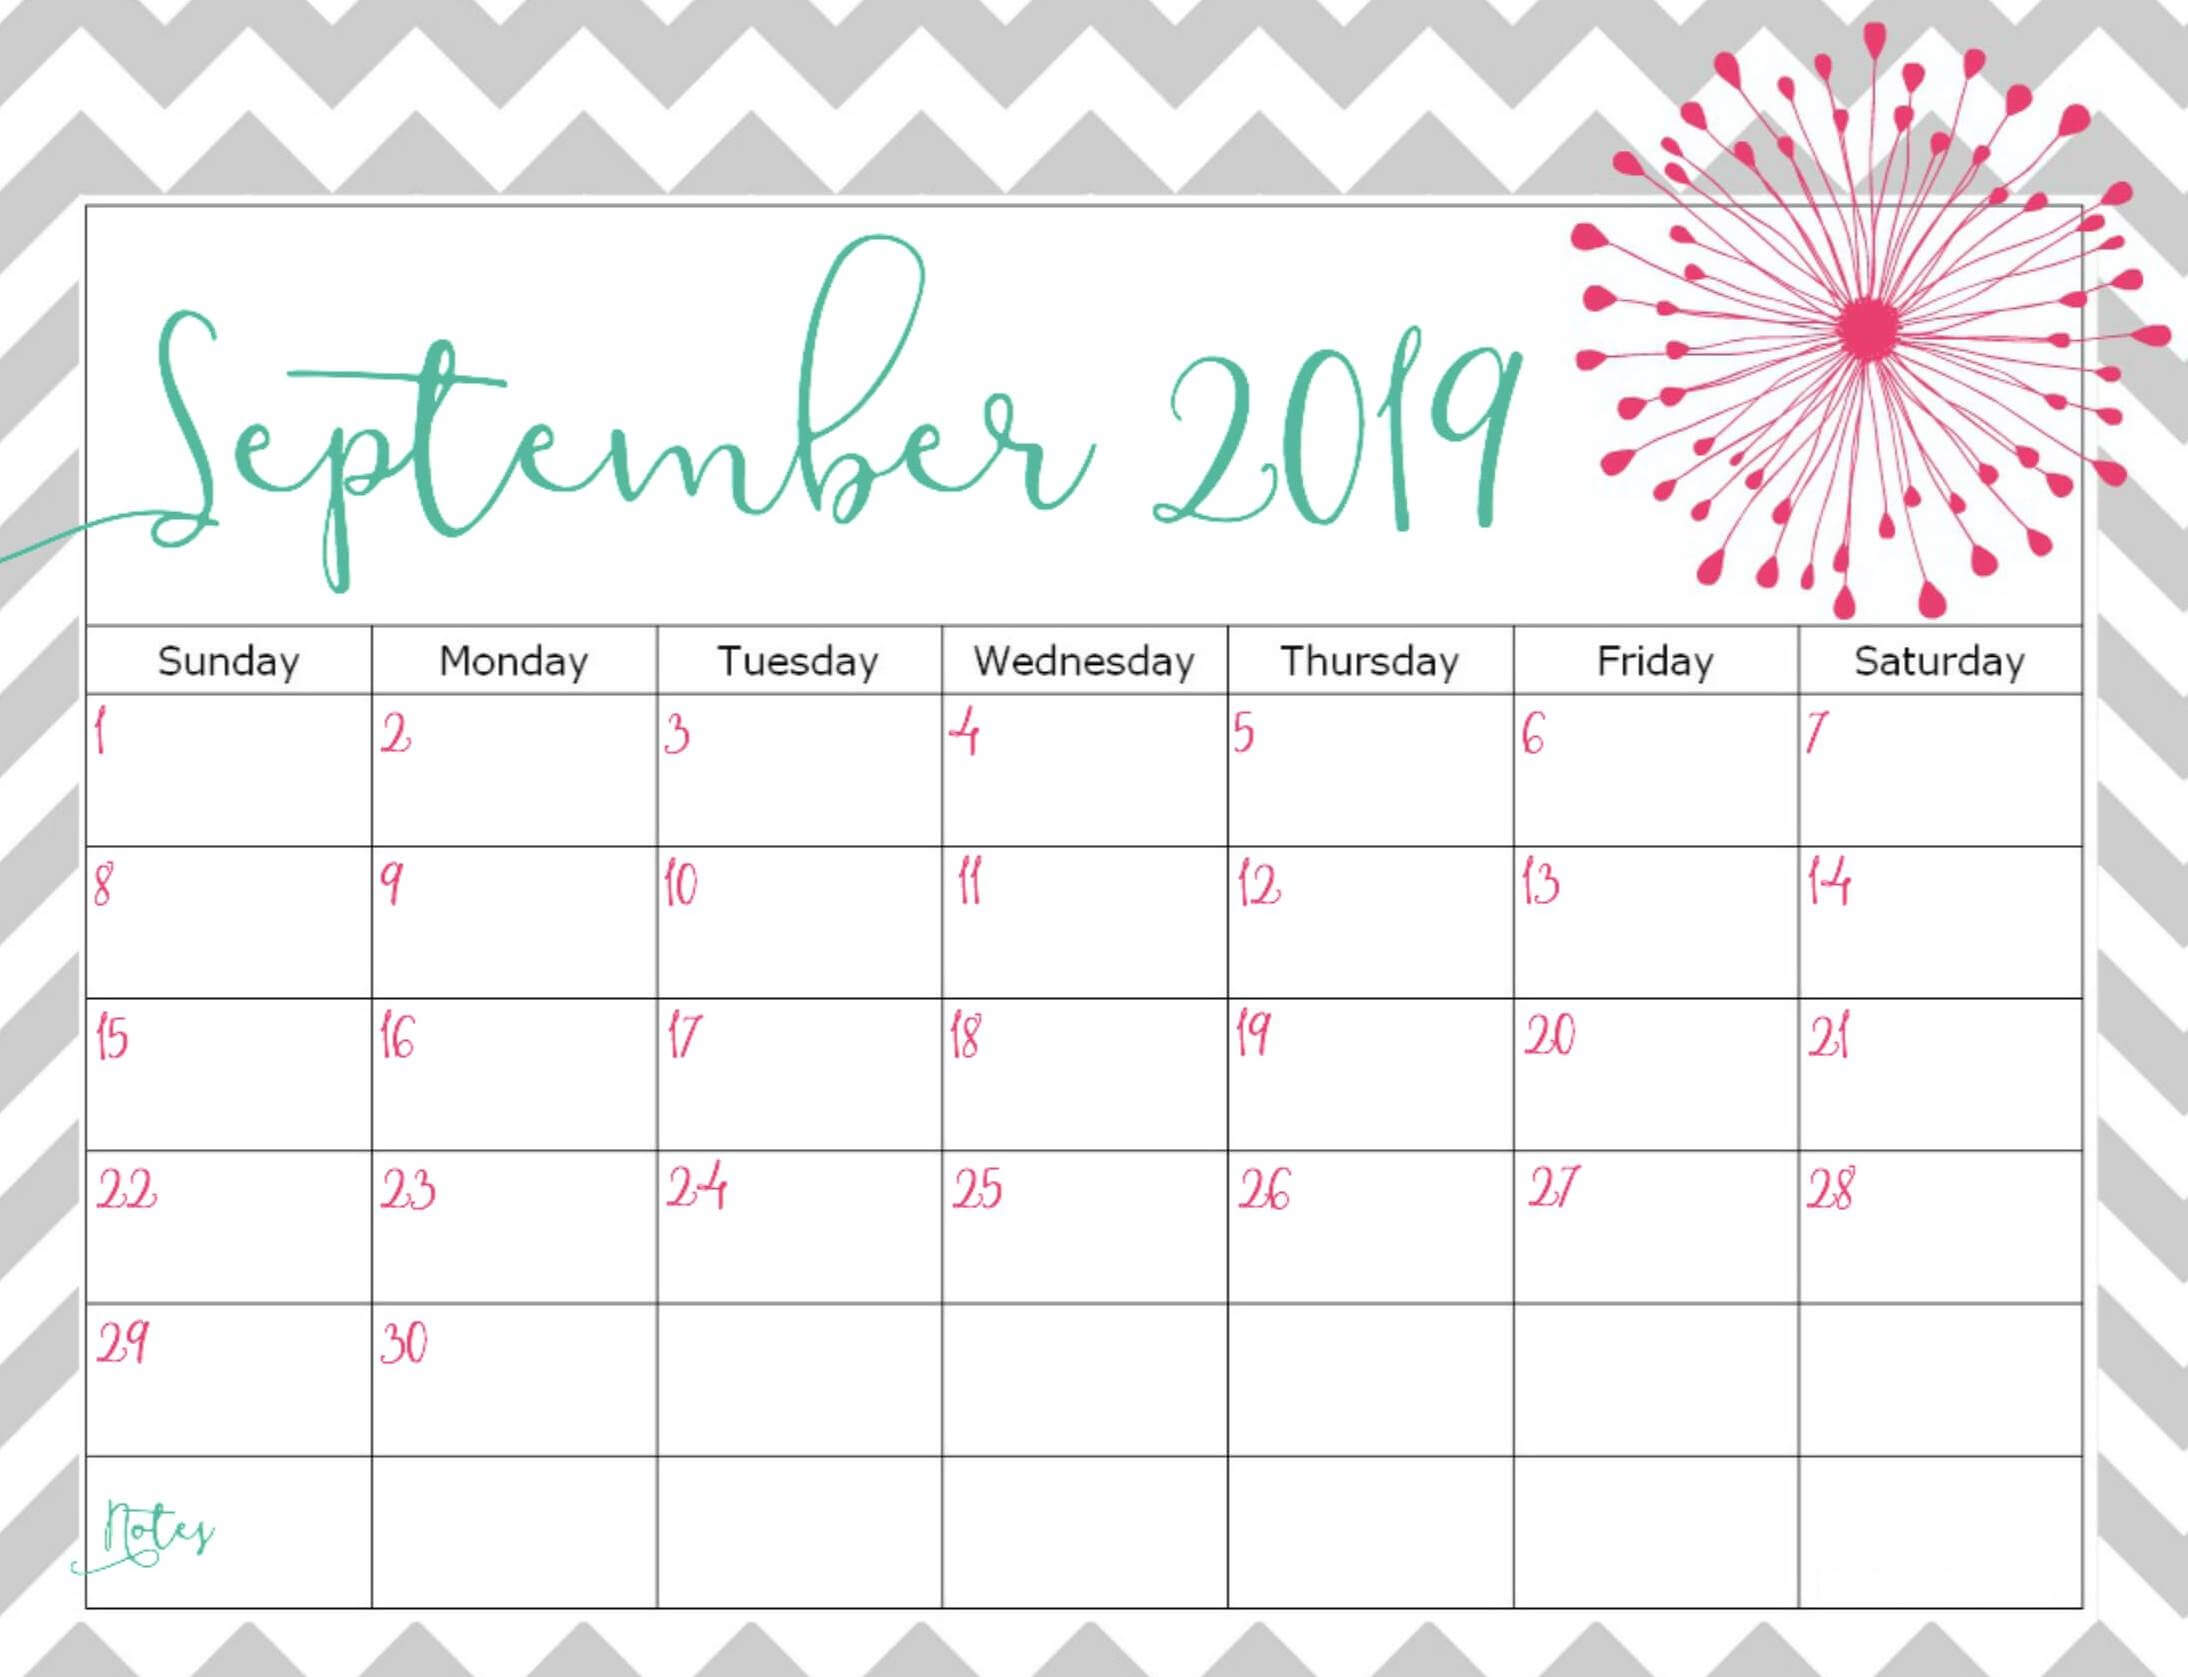 picture regarding Printable September Calendar called Floral Lovable September 2019 Calendar Printable Template